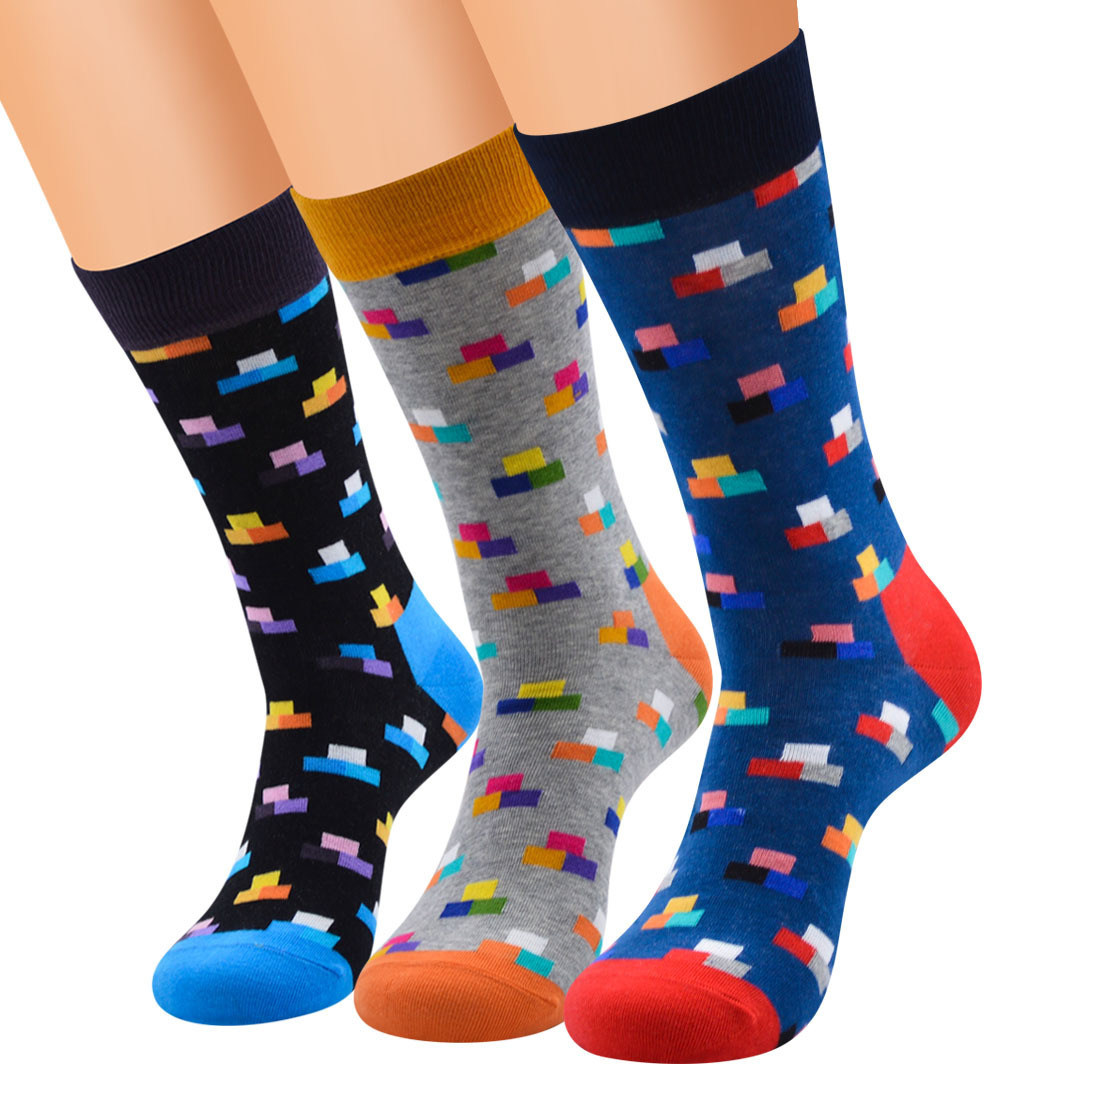 2019 Hot Sale Casual Men   Socks   New   Socks   Fashion Design Plaid Colorful Happy Party Dress Cotton Sokken For Business